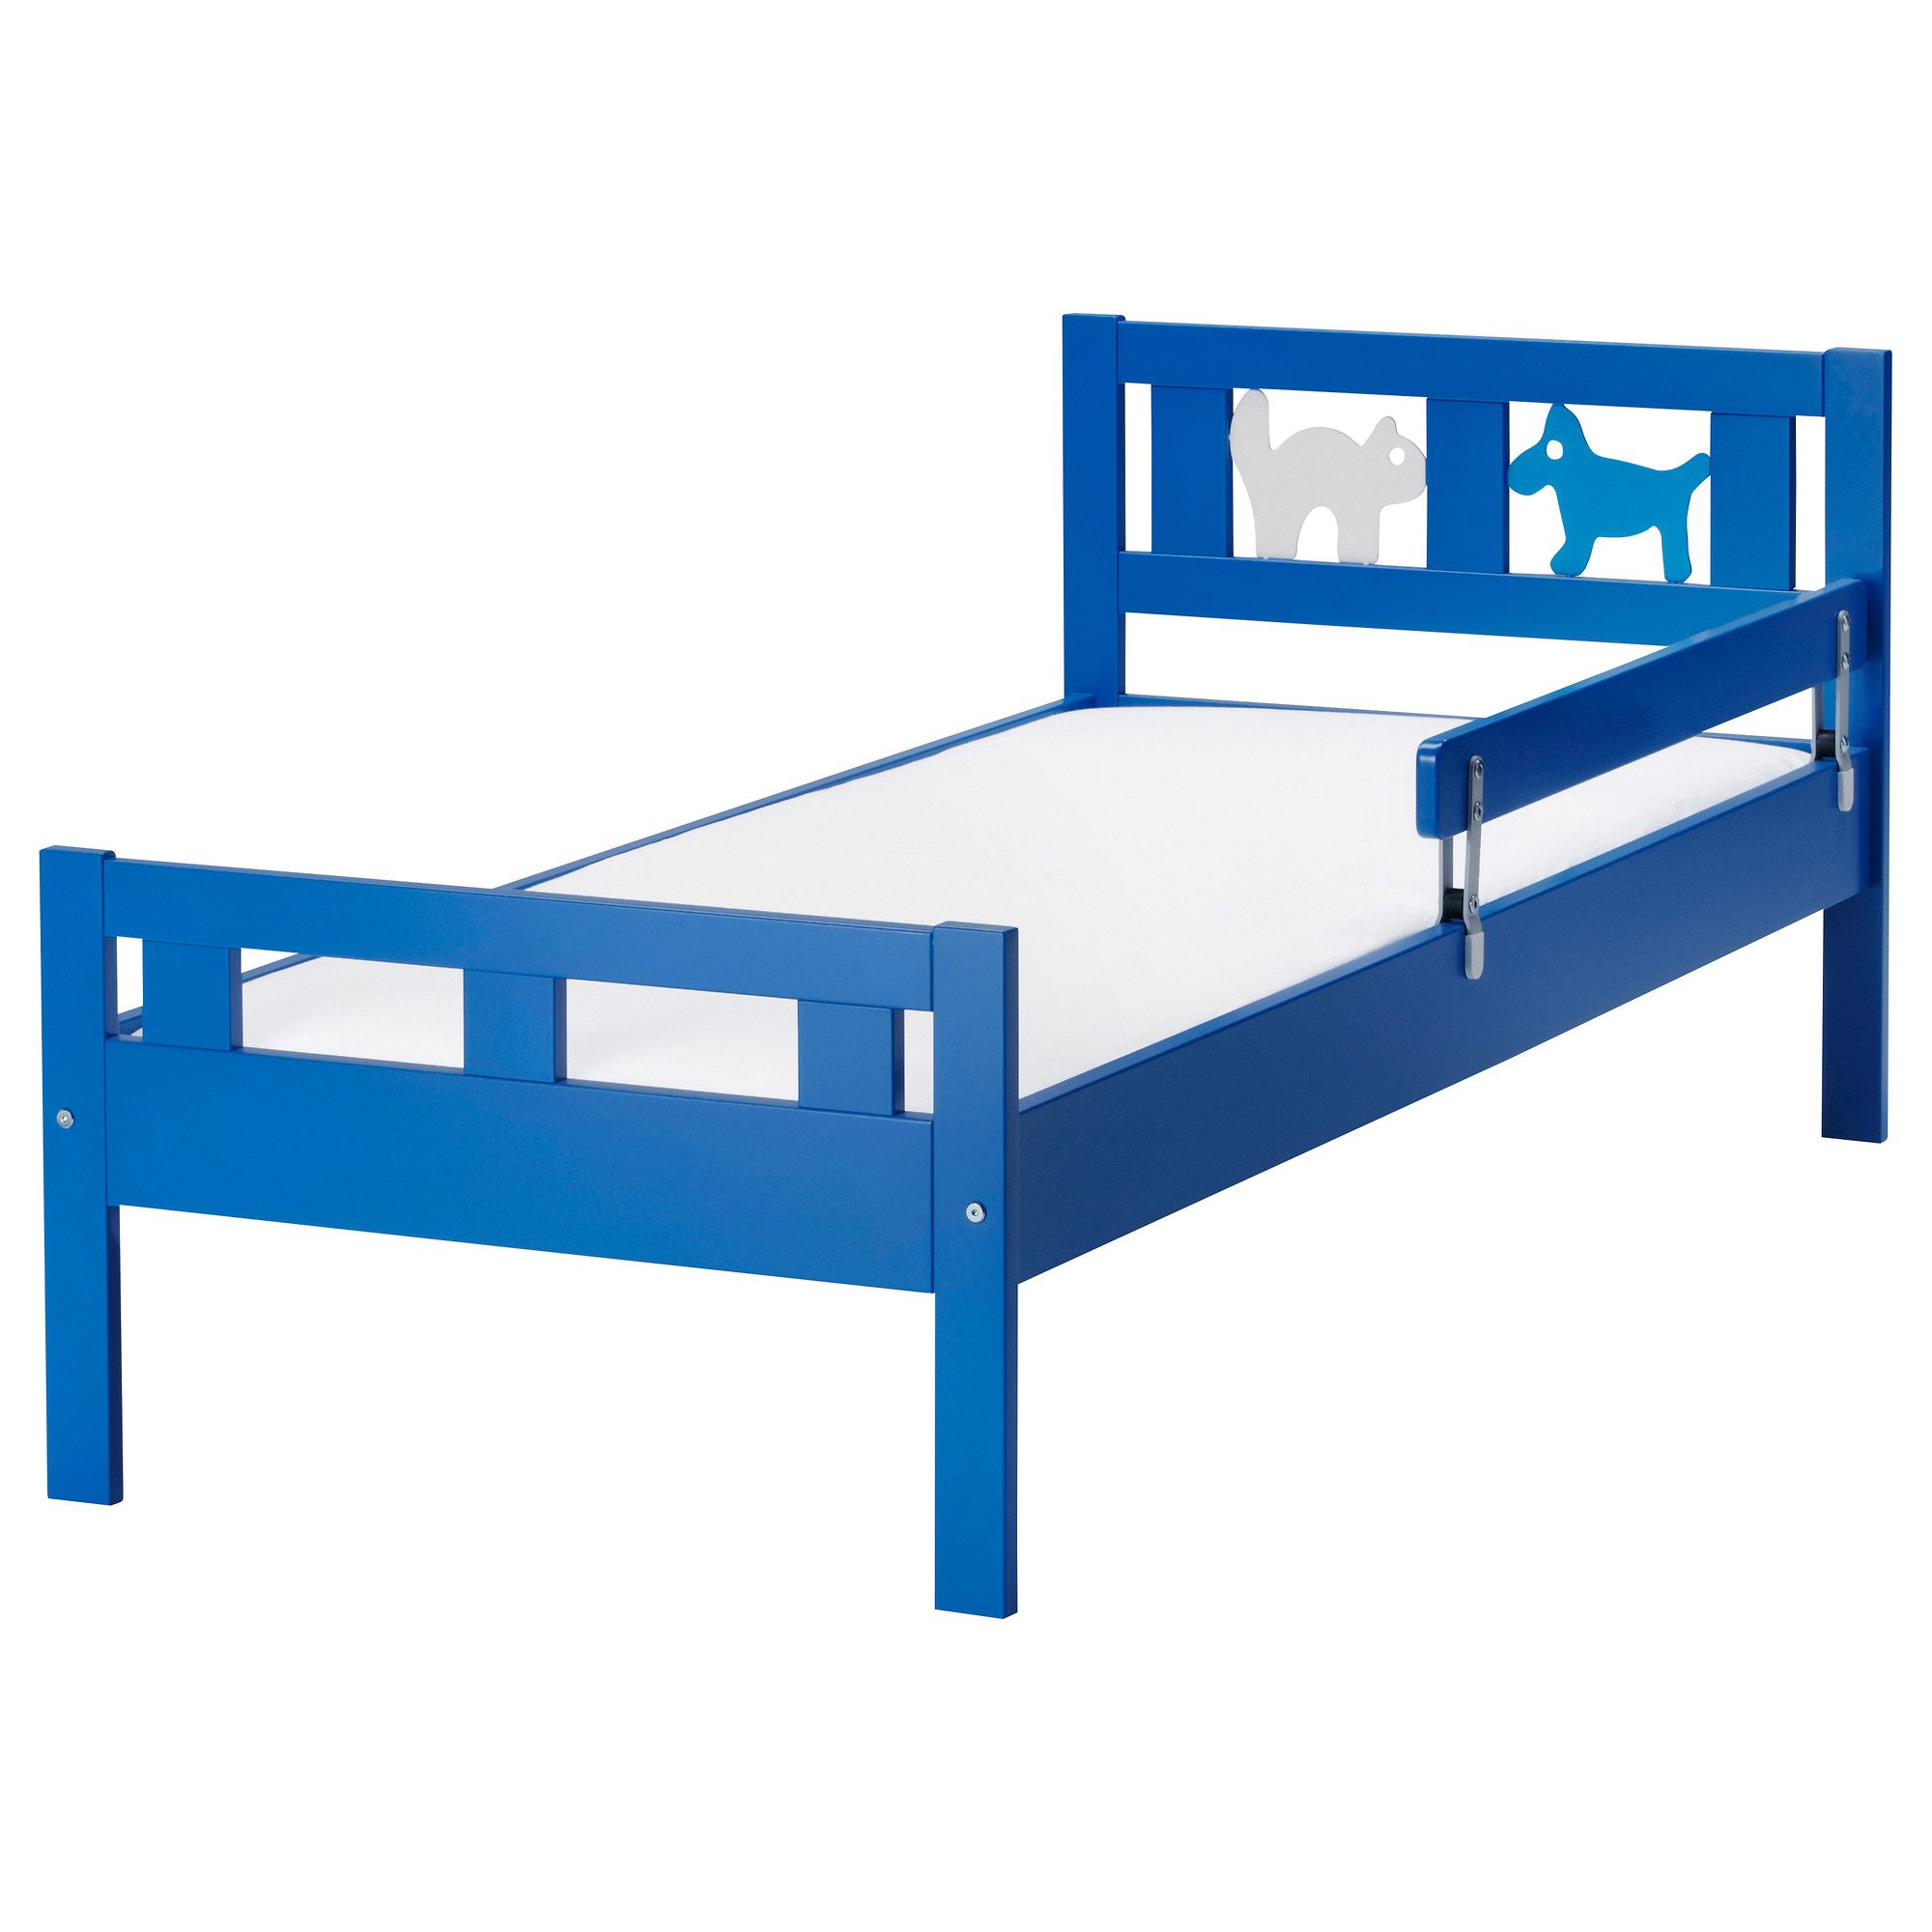 Kritter bed frame with slatted bed base blue ikea big boy bed for cullen the little one - Ikea kids bed frames ...